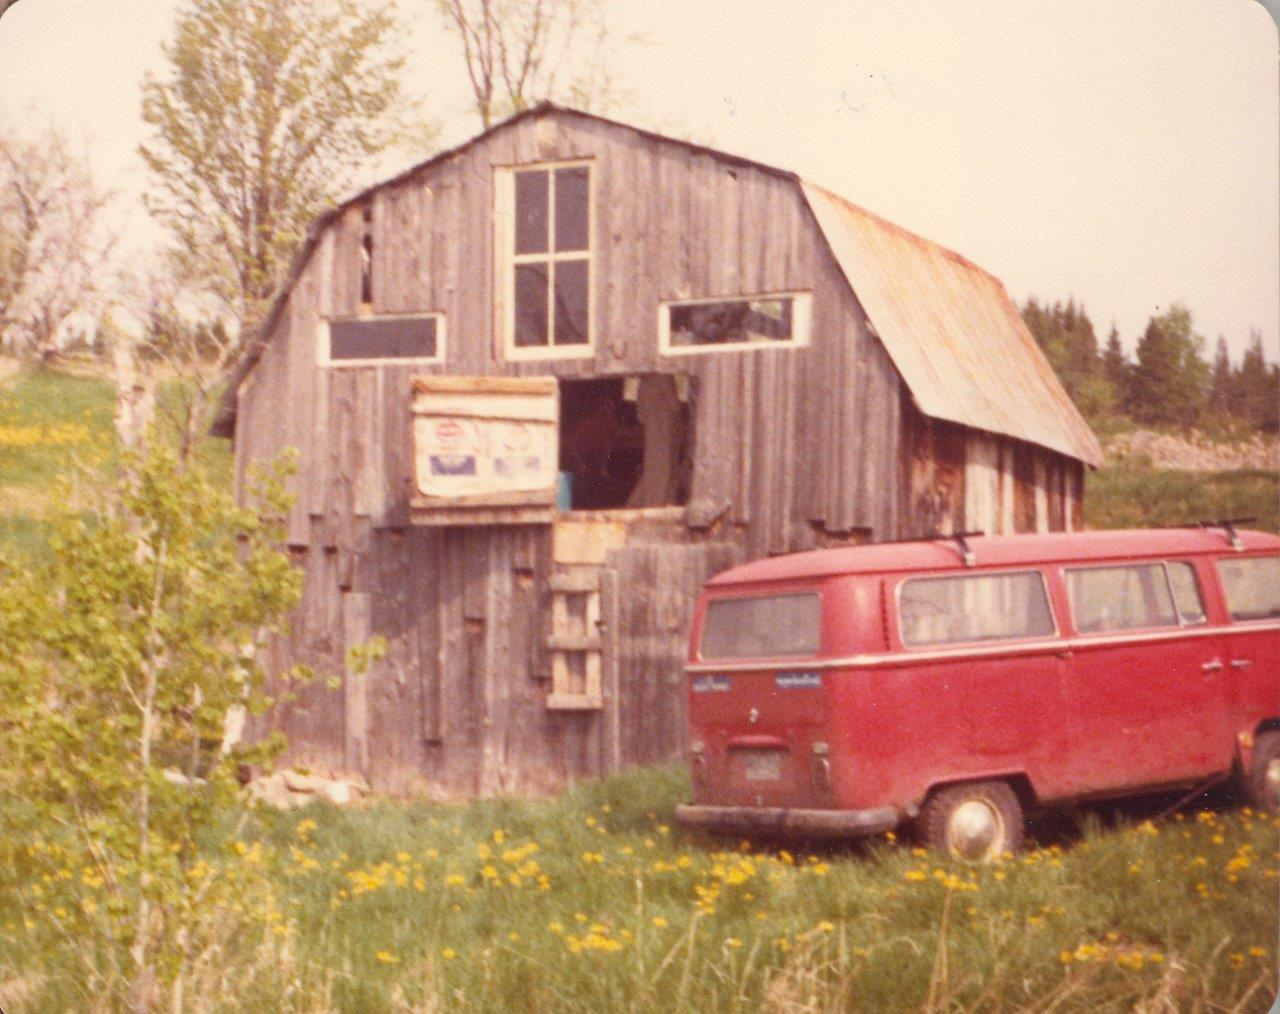 198005xx-ra-003-Robins VW Van At Barn-Randboro